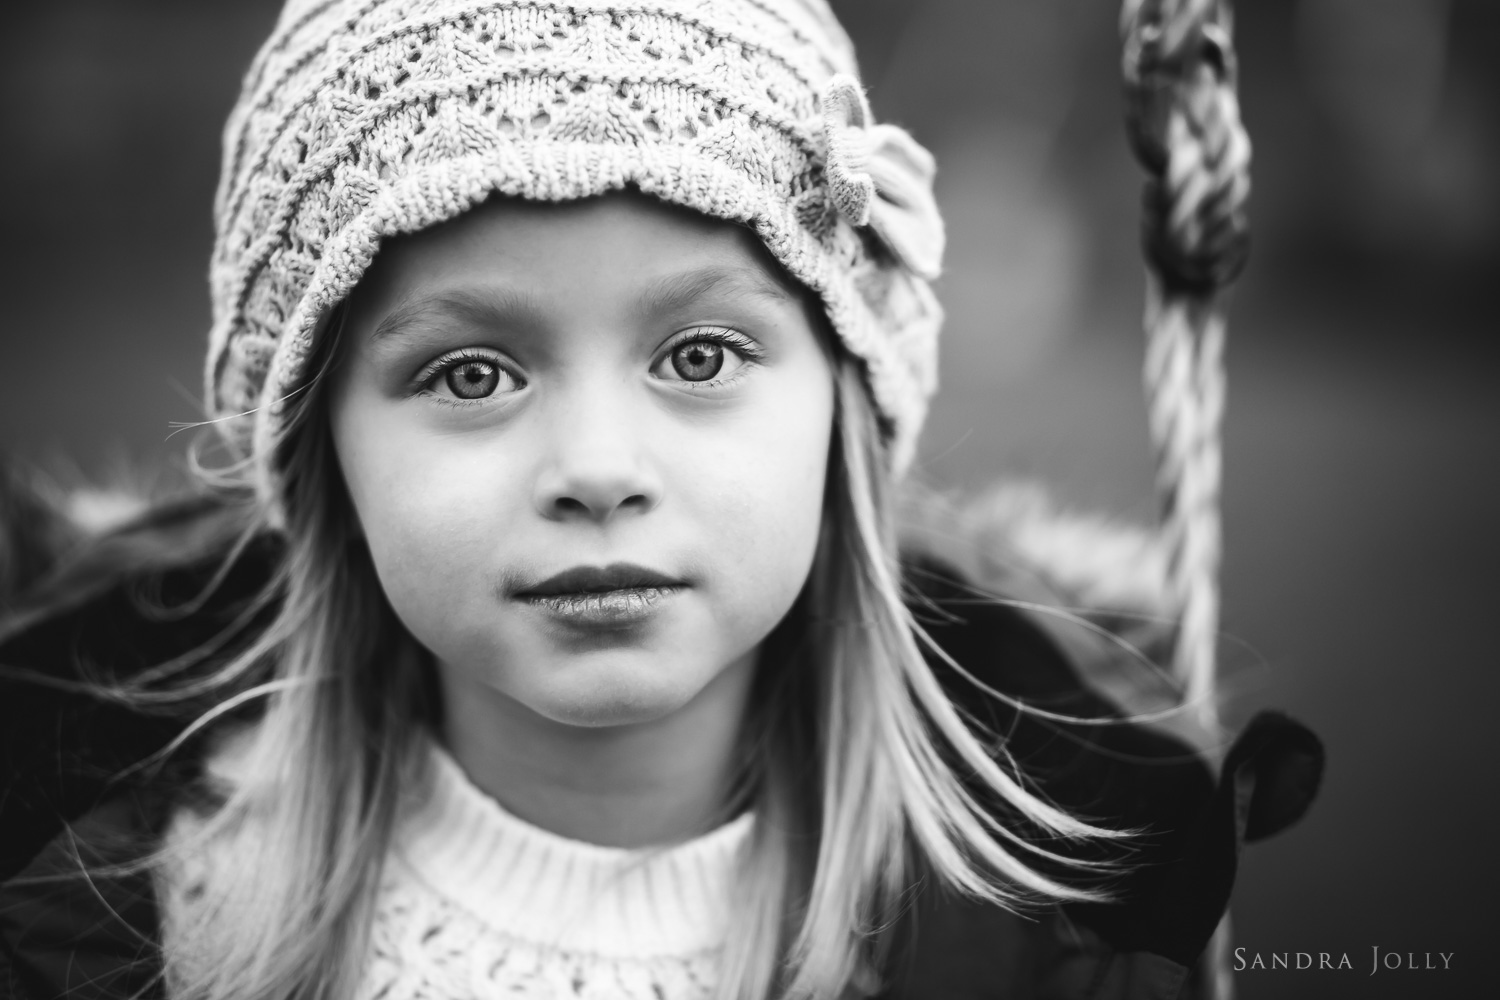 black-and-white-close-up-portrait-by-sandra-jolly-photography.jpg